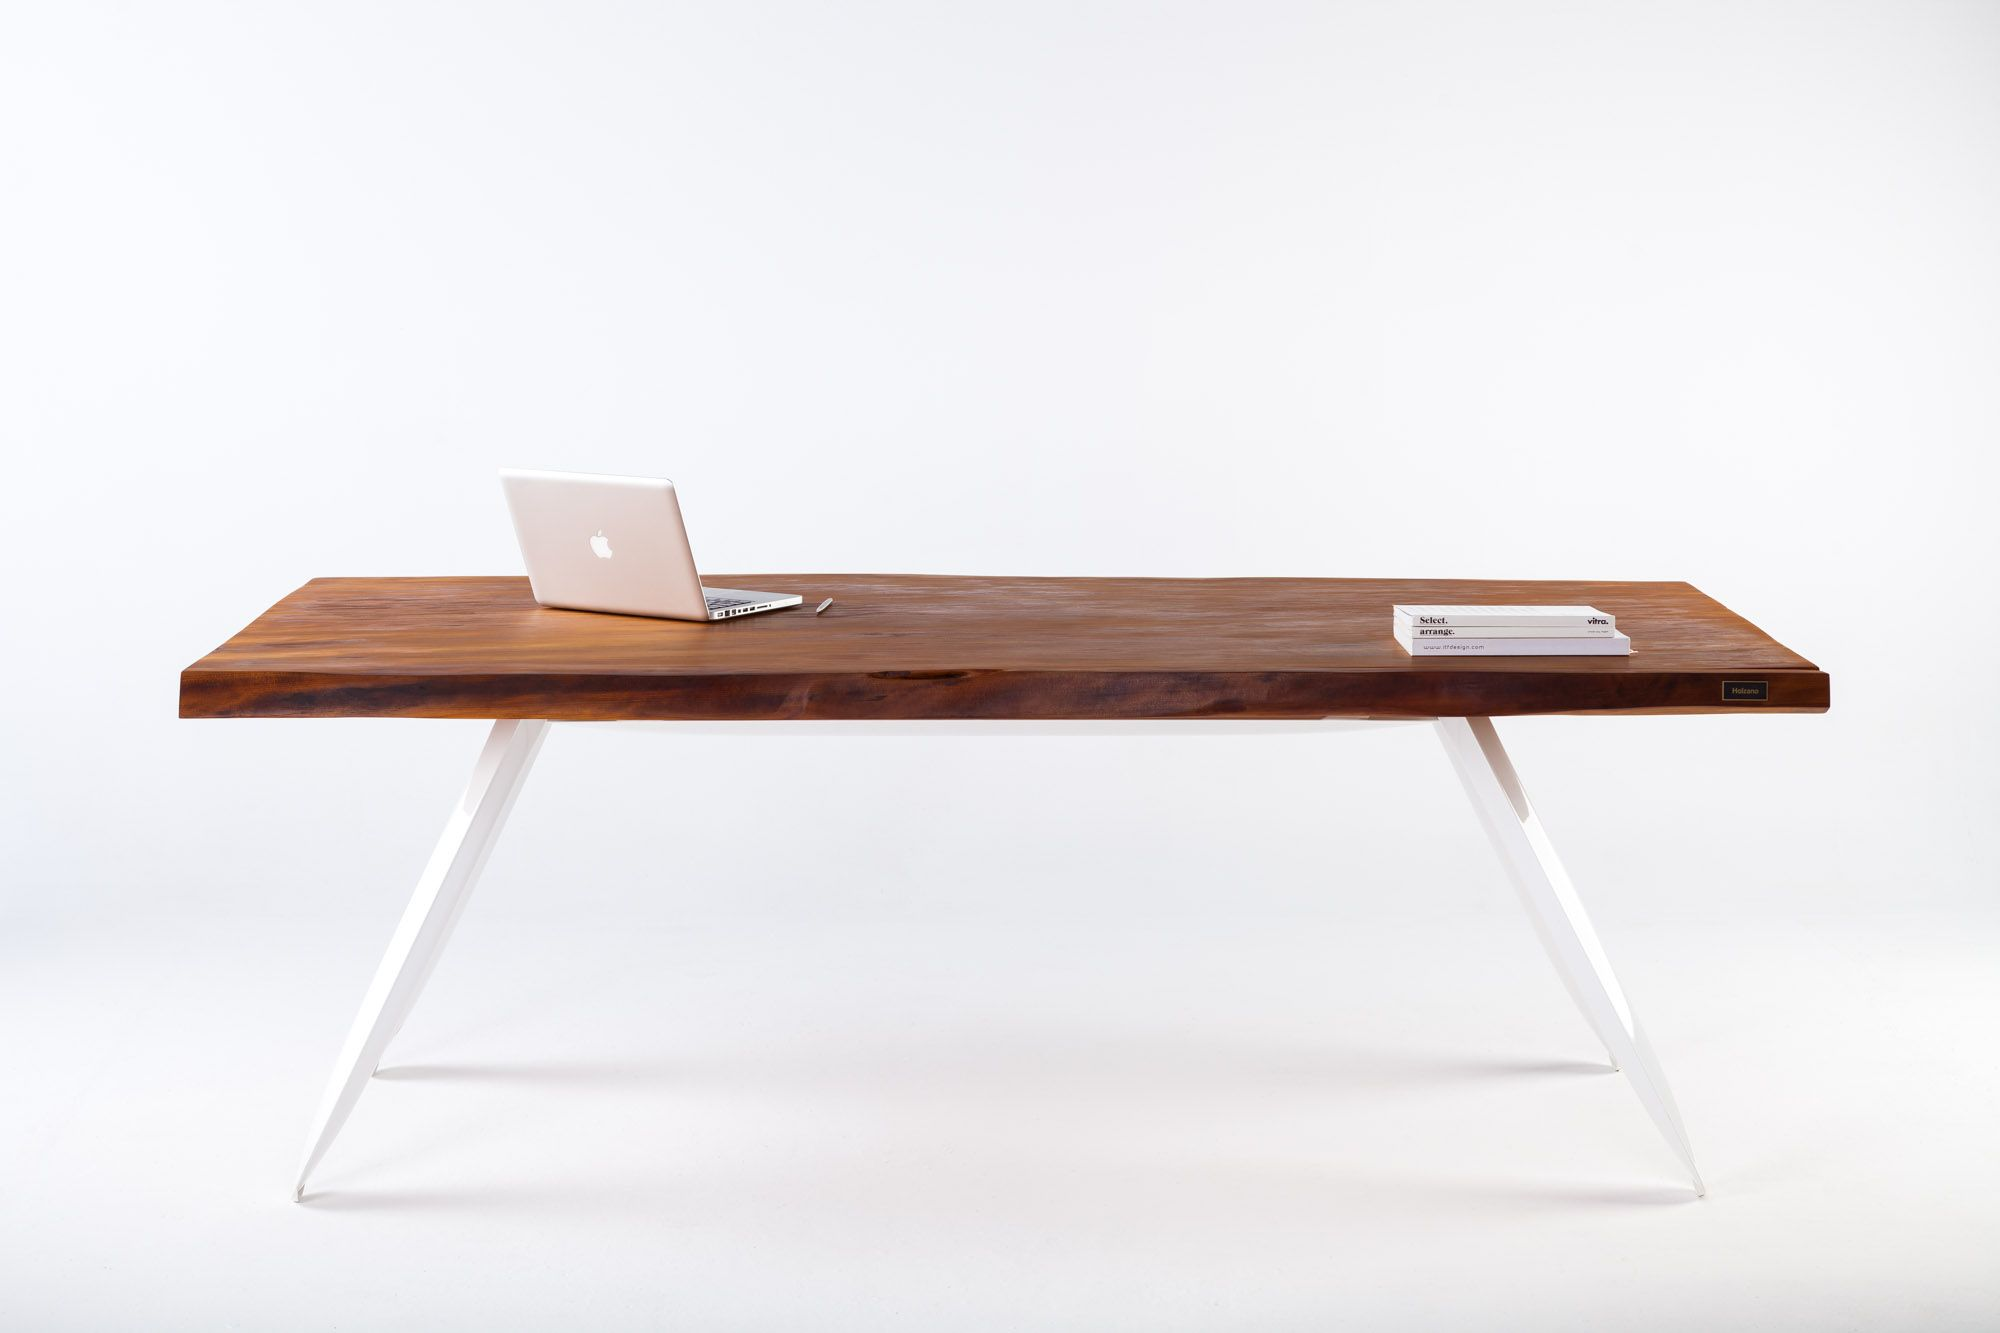 Kauri Table A Perfect Combination Of Materials The Human Race Has Been Using For Thousands Of Years Wood And Steel The An Design Tisch Altholz Tisch Antik